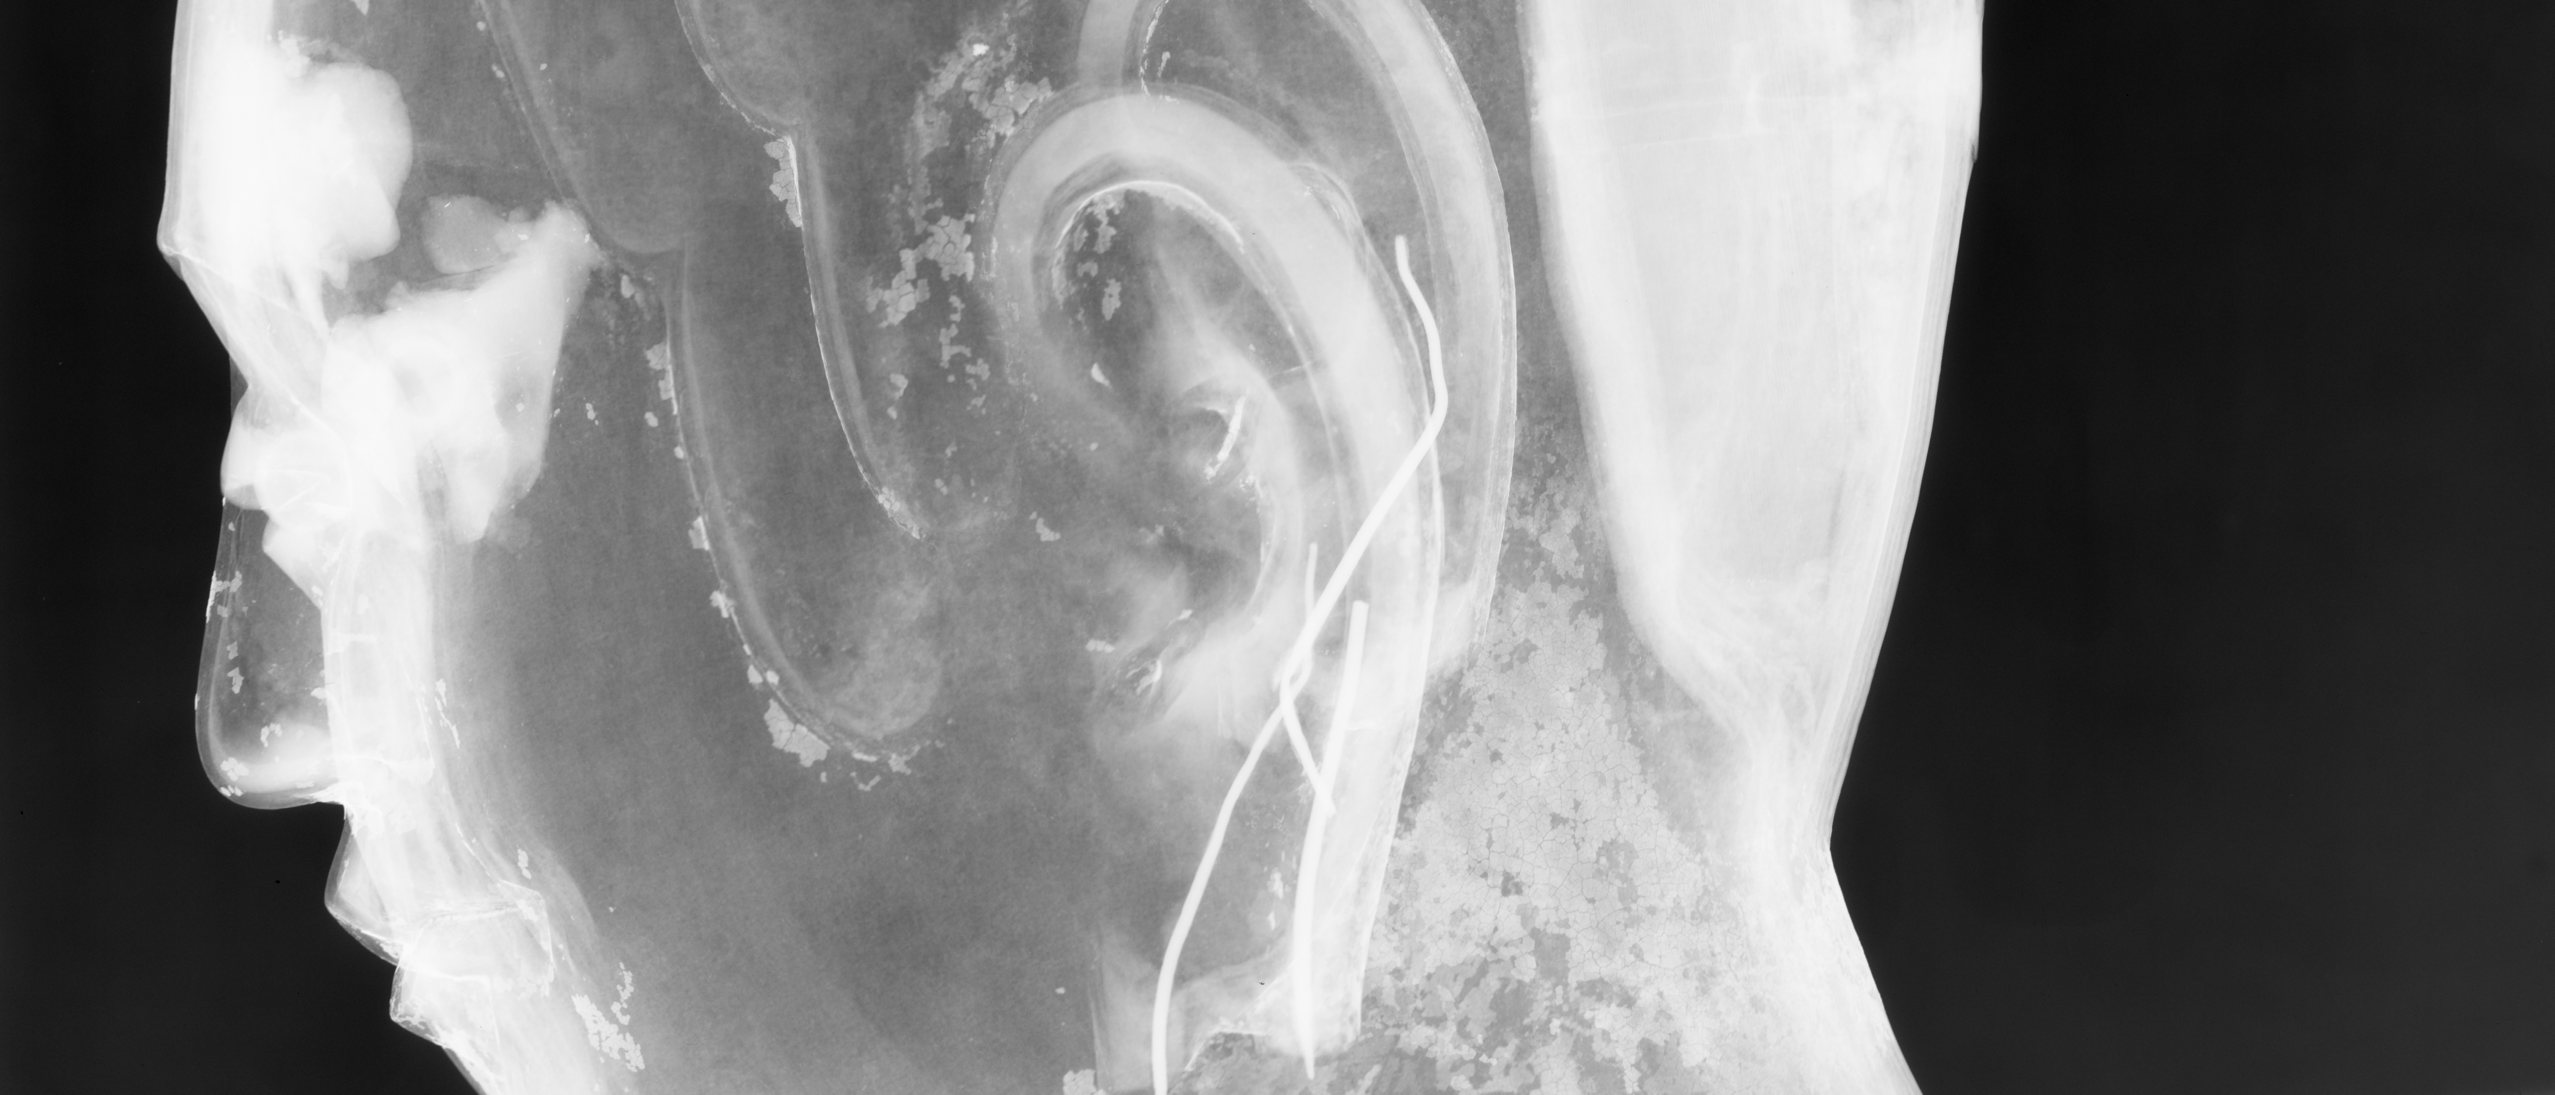 X-ray image of the face of a lacquer Buddha in profile